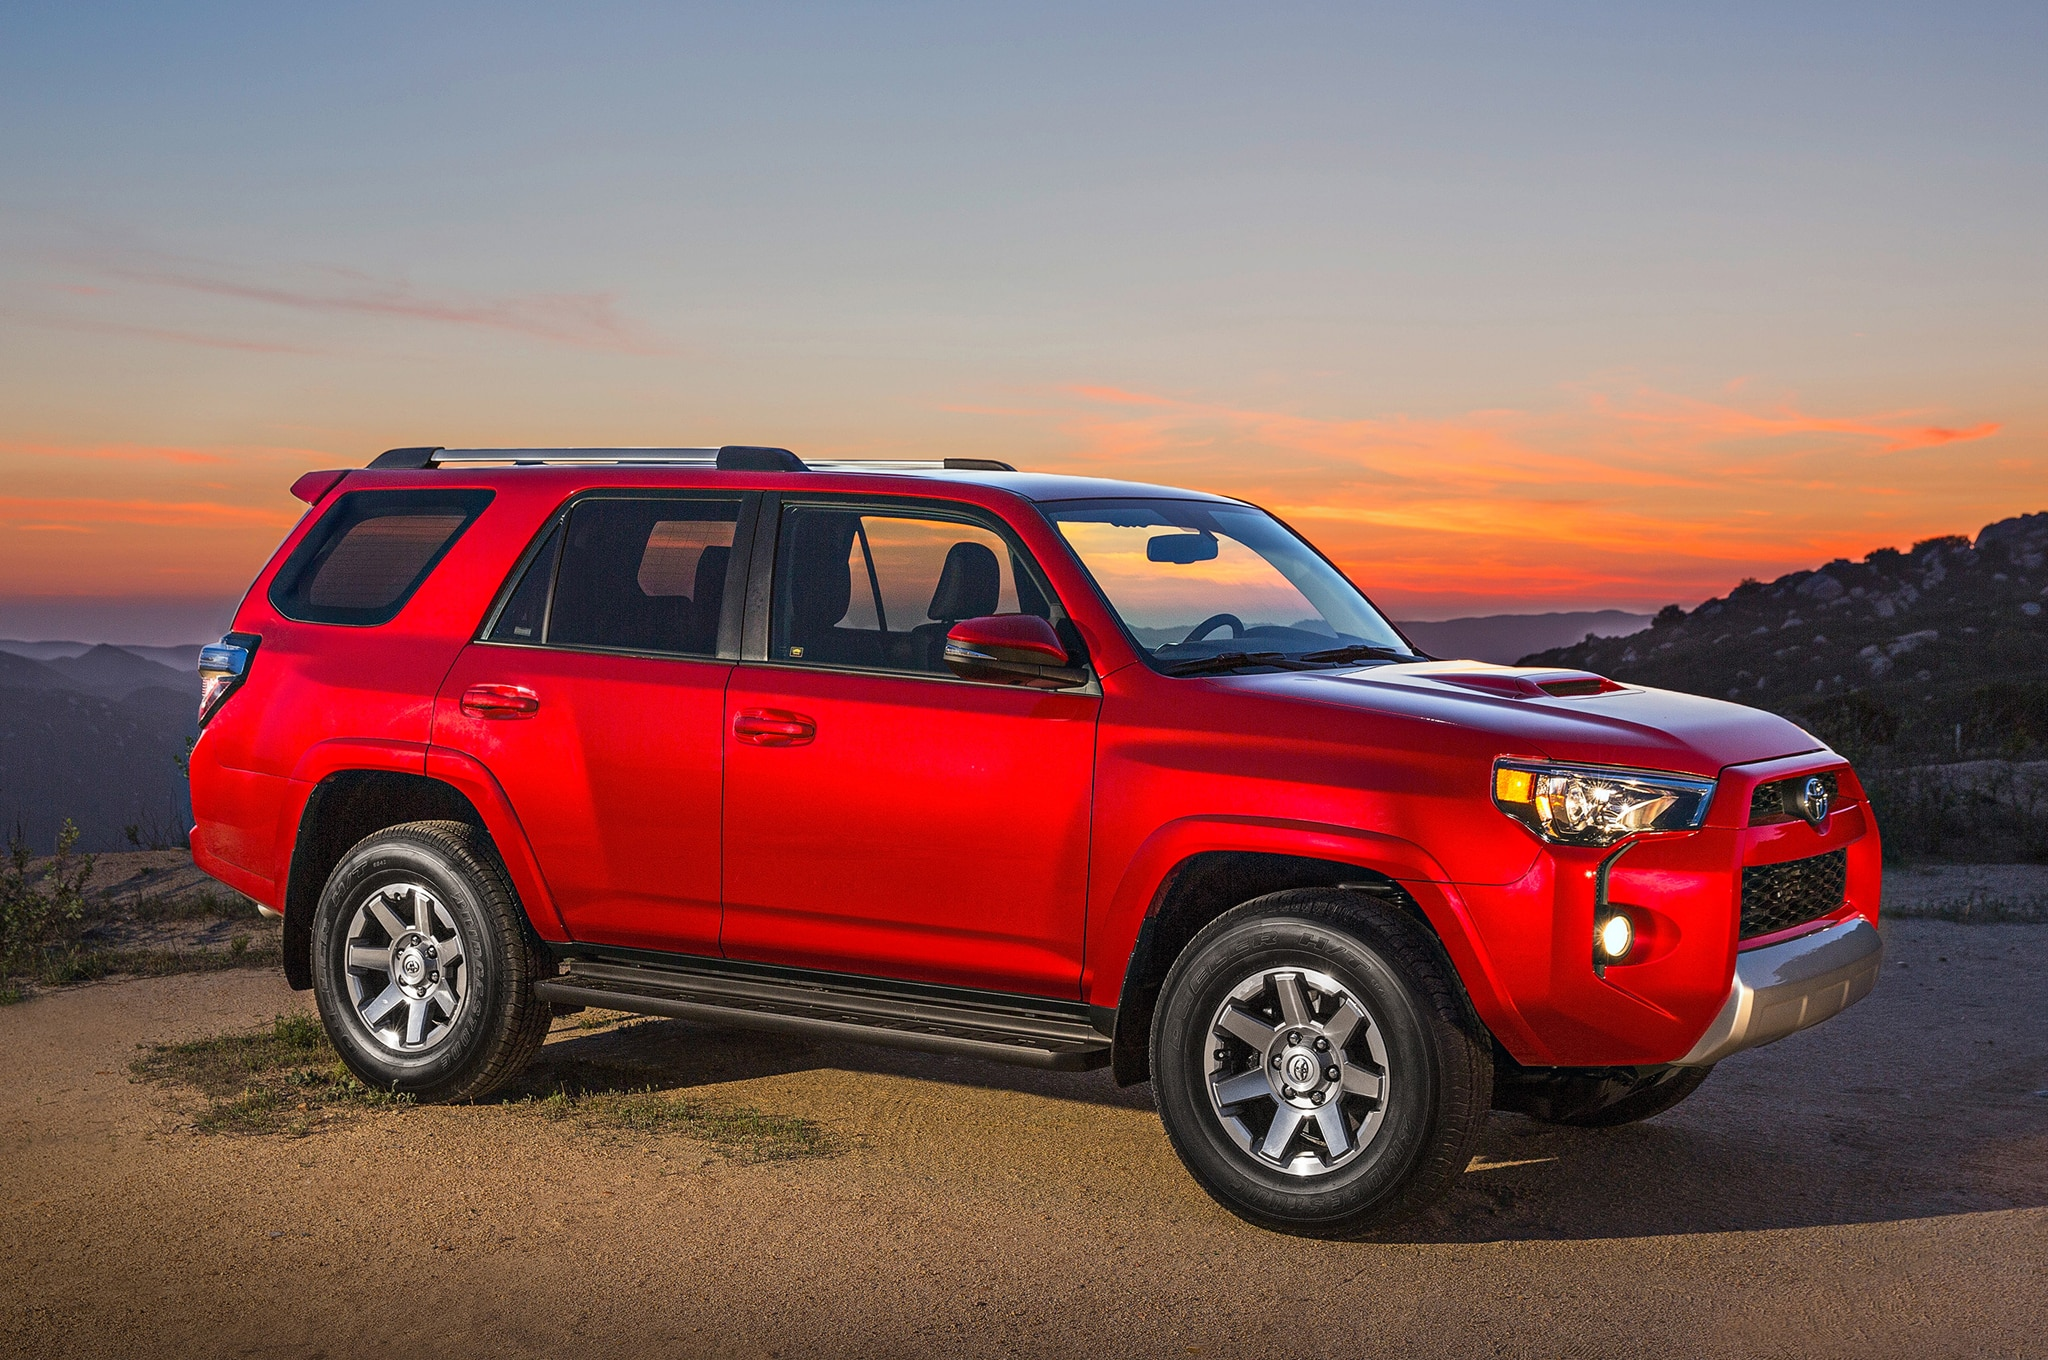 2014 Toyota 4runner Trail front view at sunset